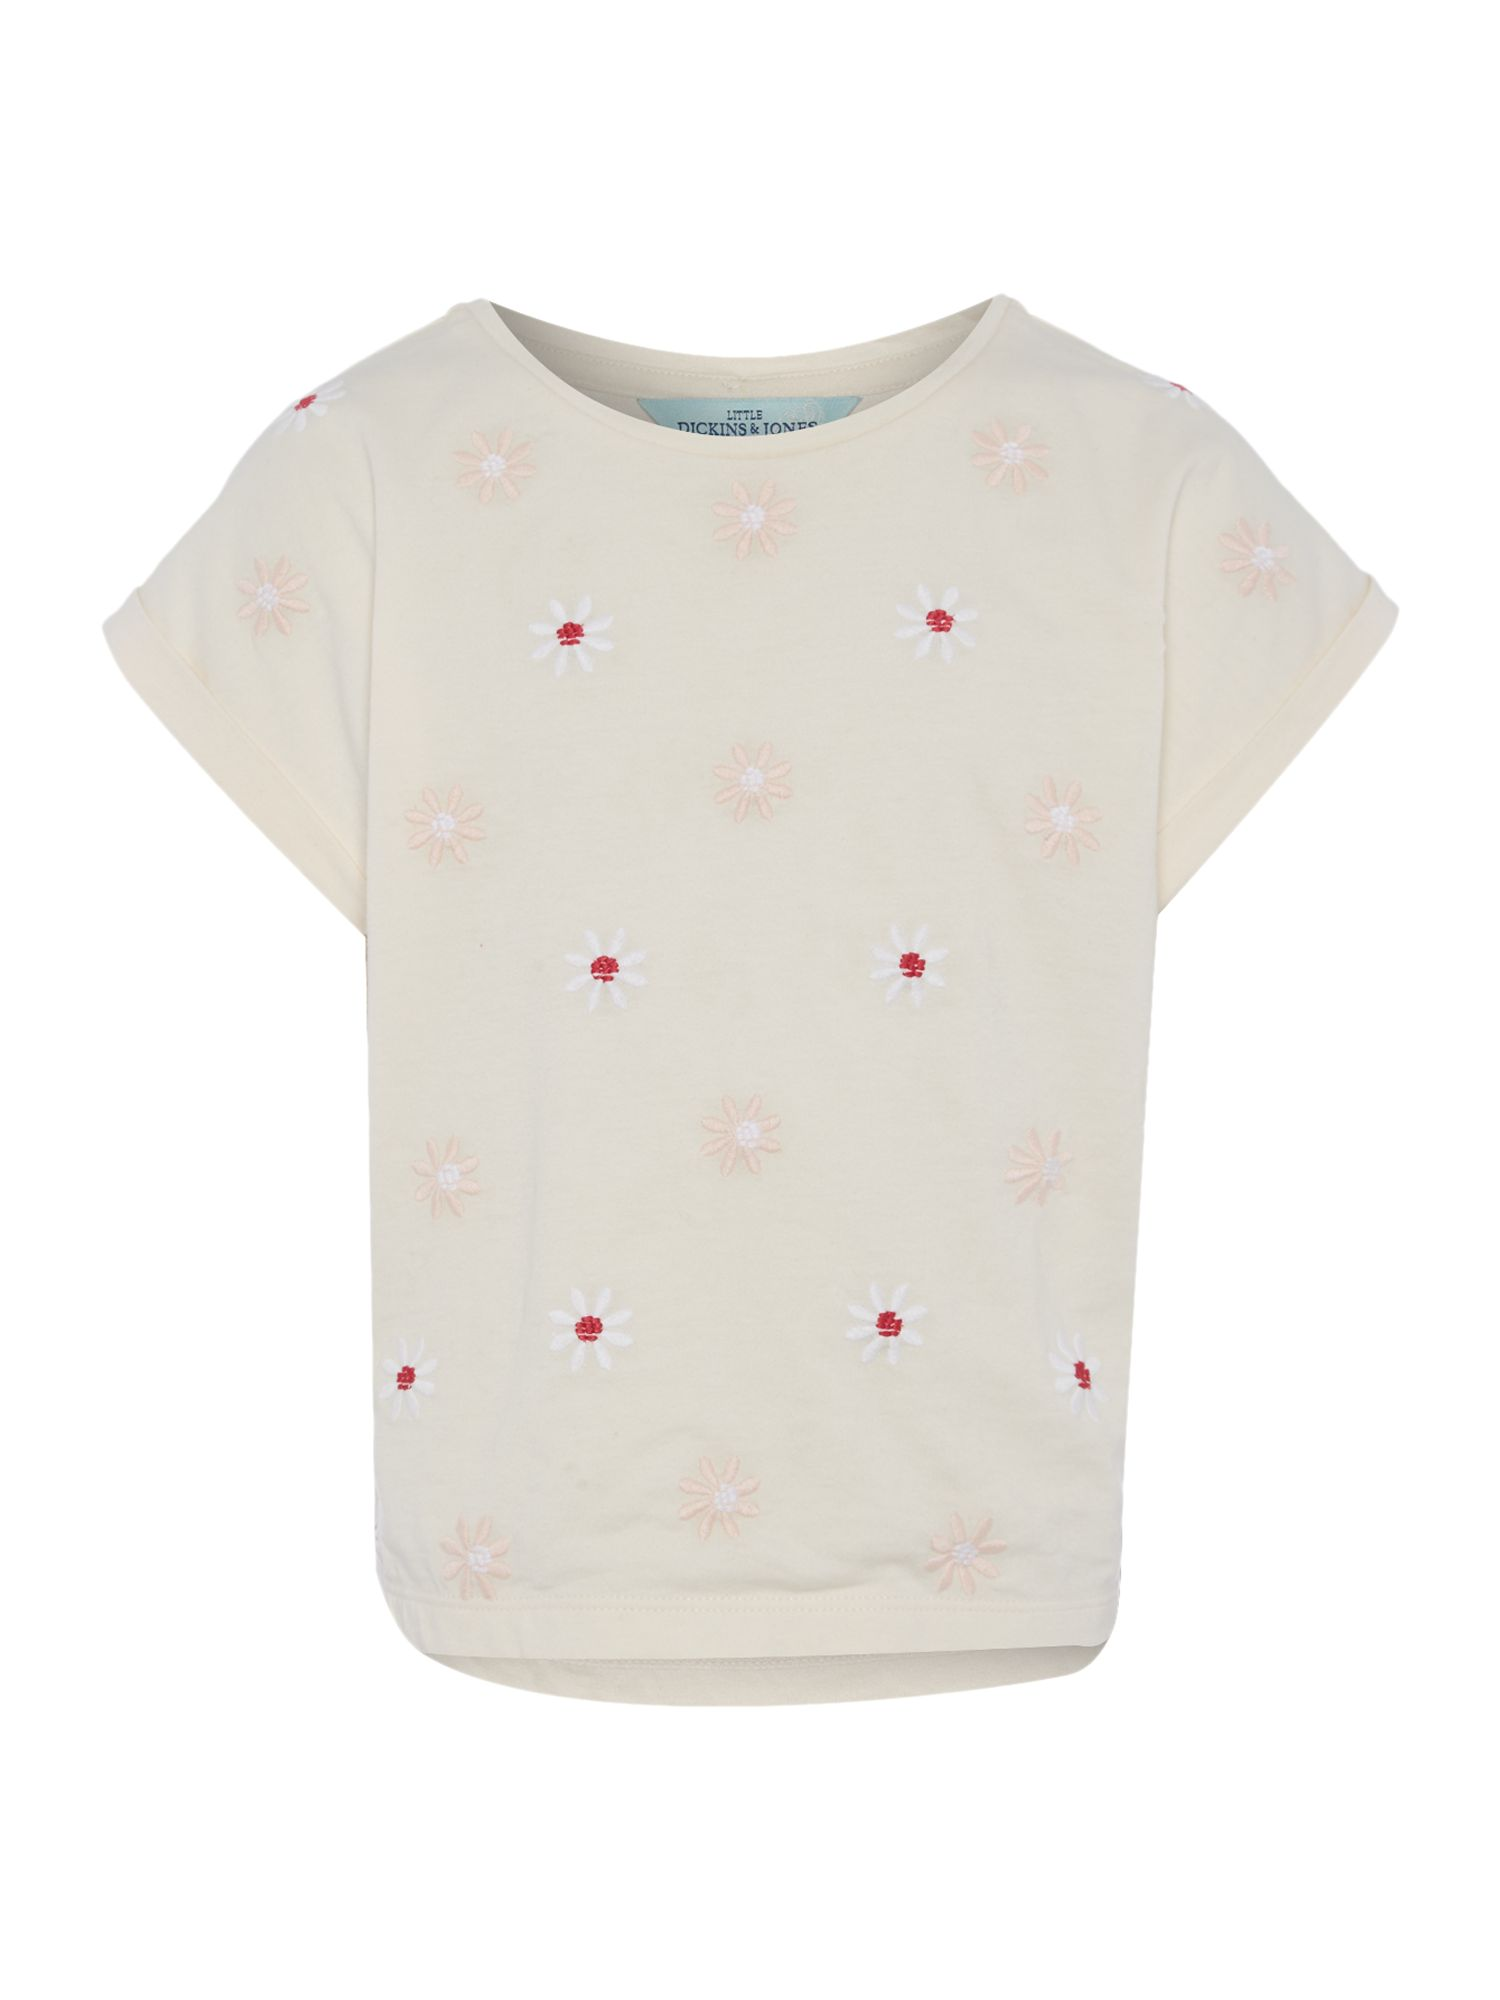 Little Dickins & Jones Little Dickins & Jones Girls Sequin Daisy tee, Pale Pink